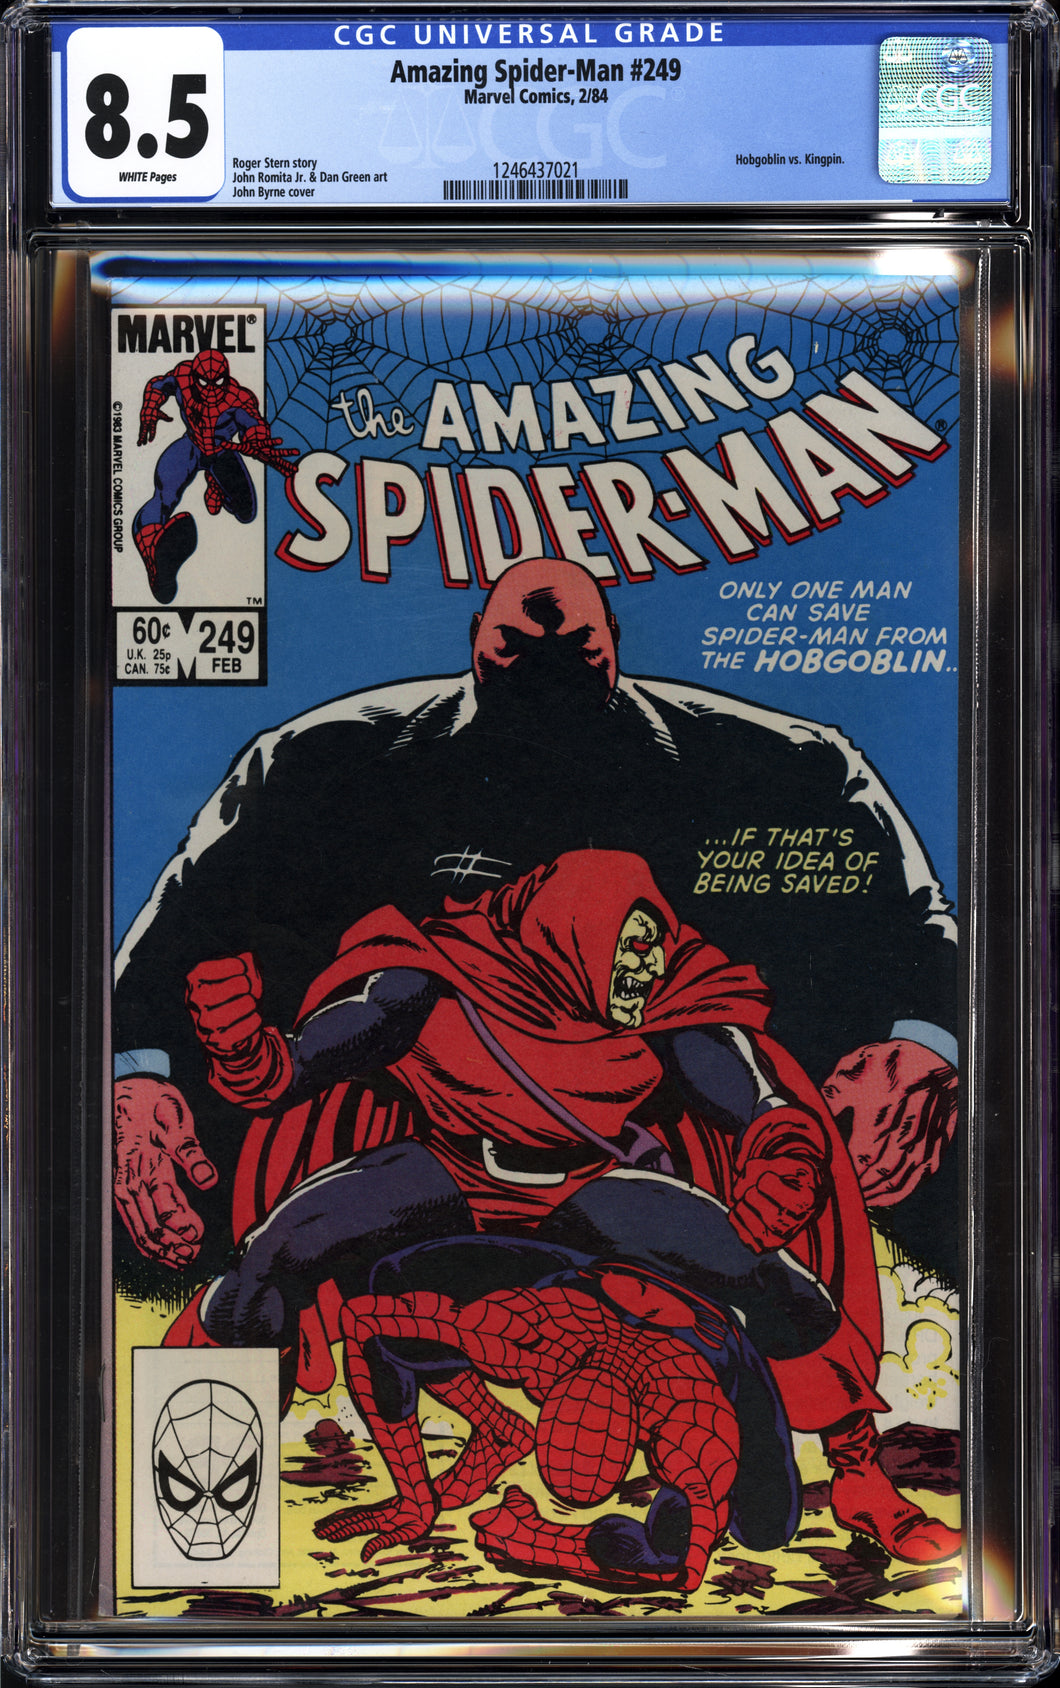 AMAZING SPIDER-MAN #249 (1984 Marvel) CGC 8.5 VF+ Hobgoblin vs Kingpin